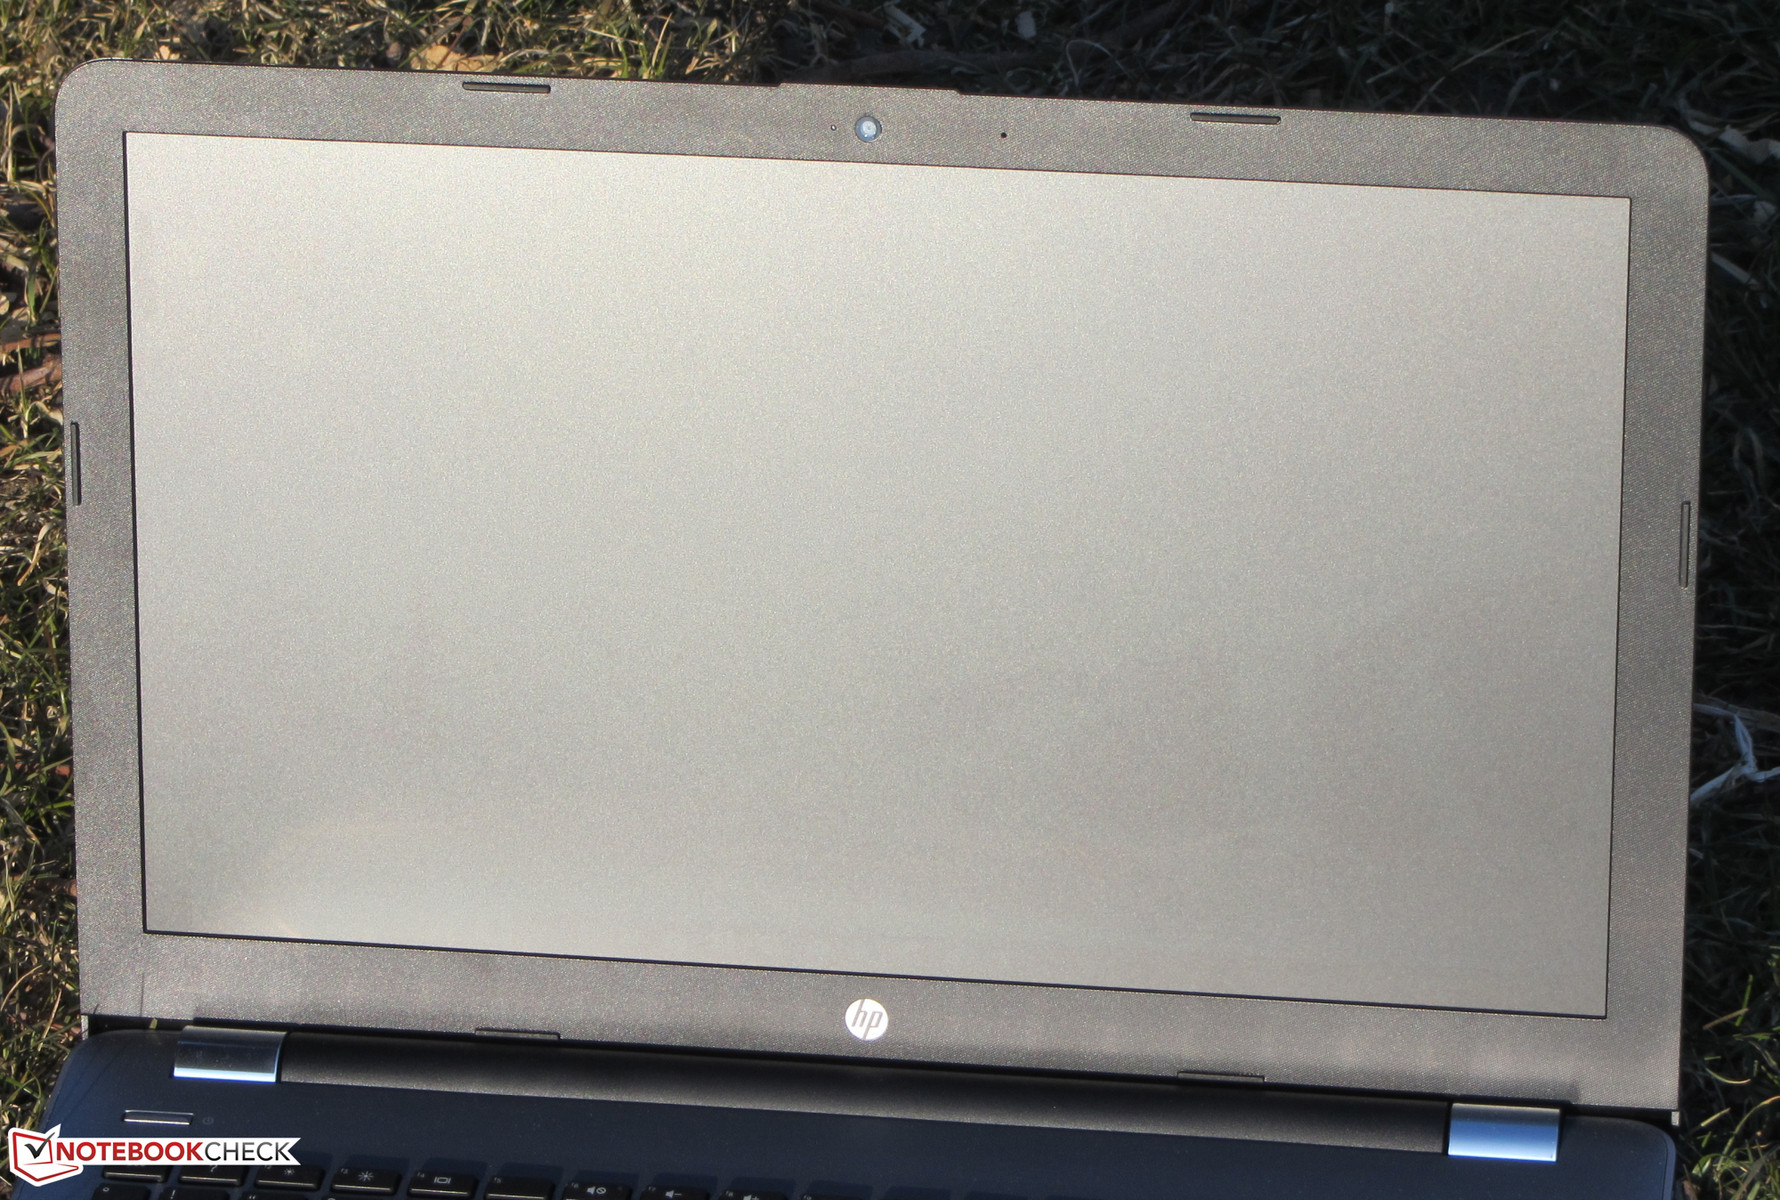 HP 250 G6 (i3-6006U, SSD, FHD) Laptop Review - NotebookCheck